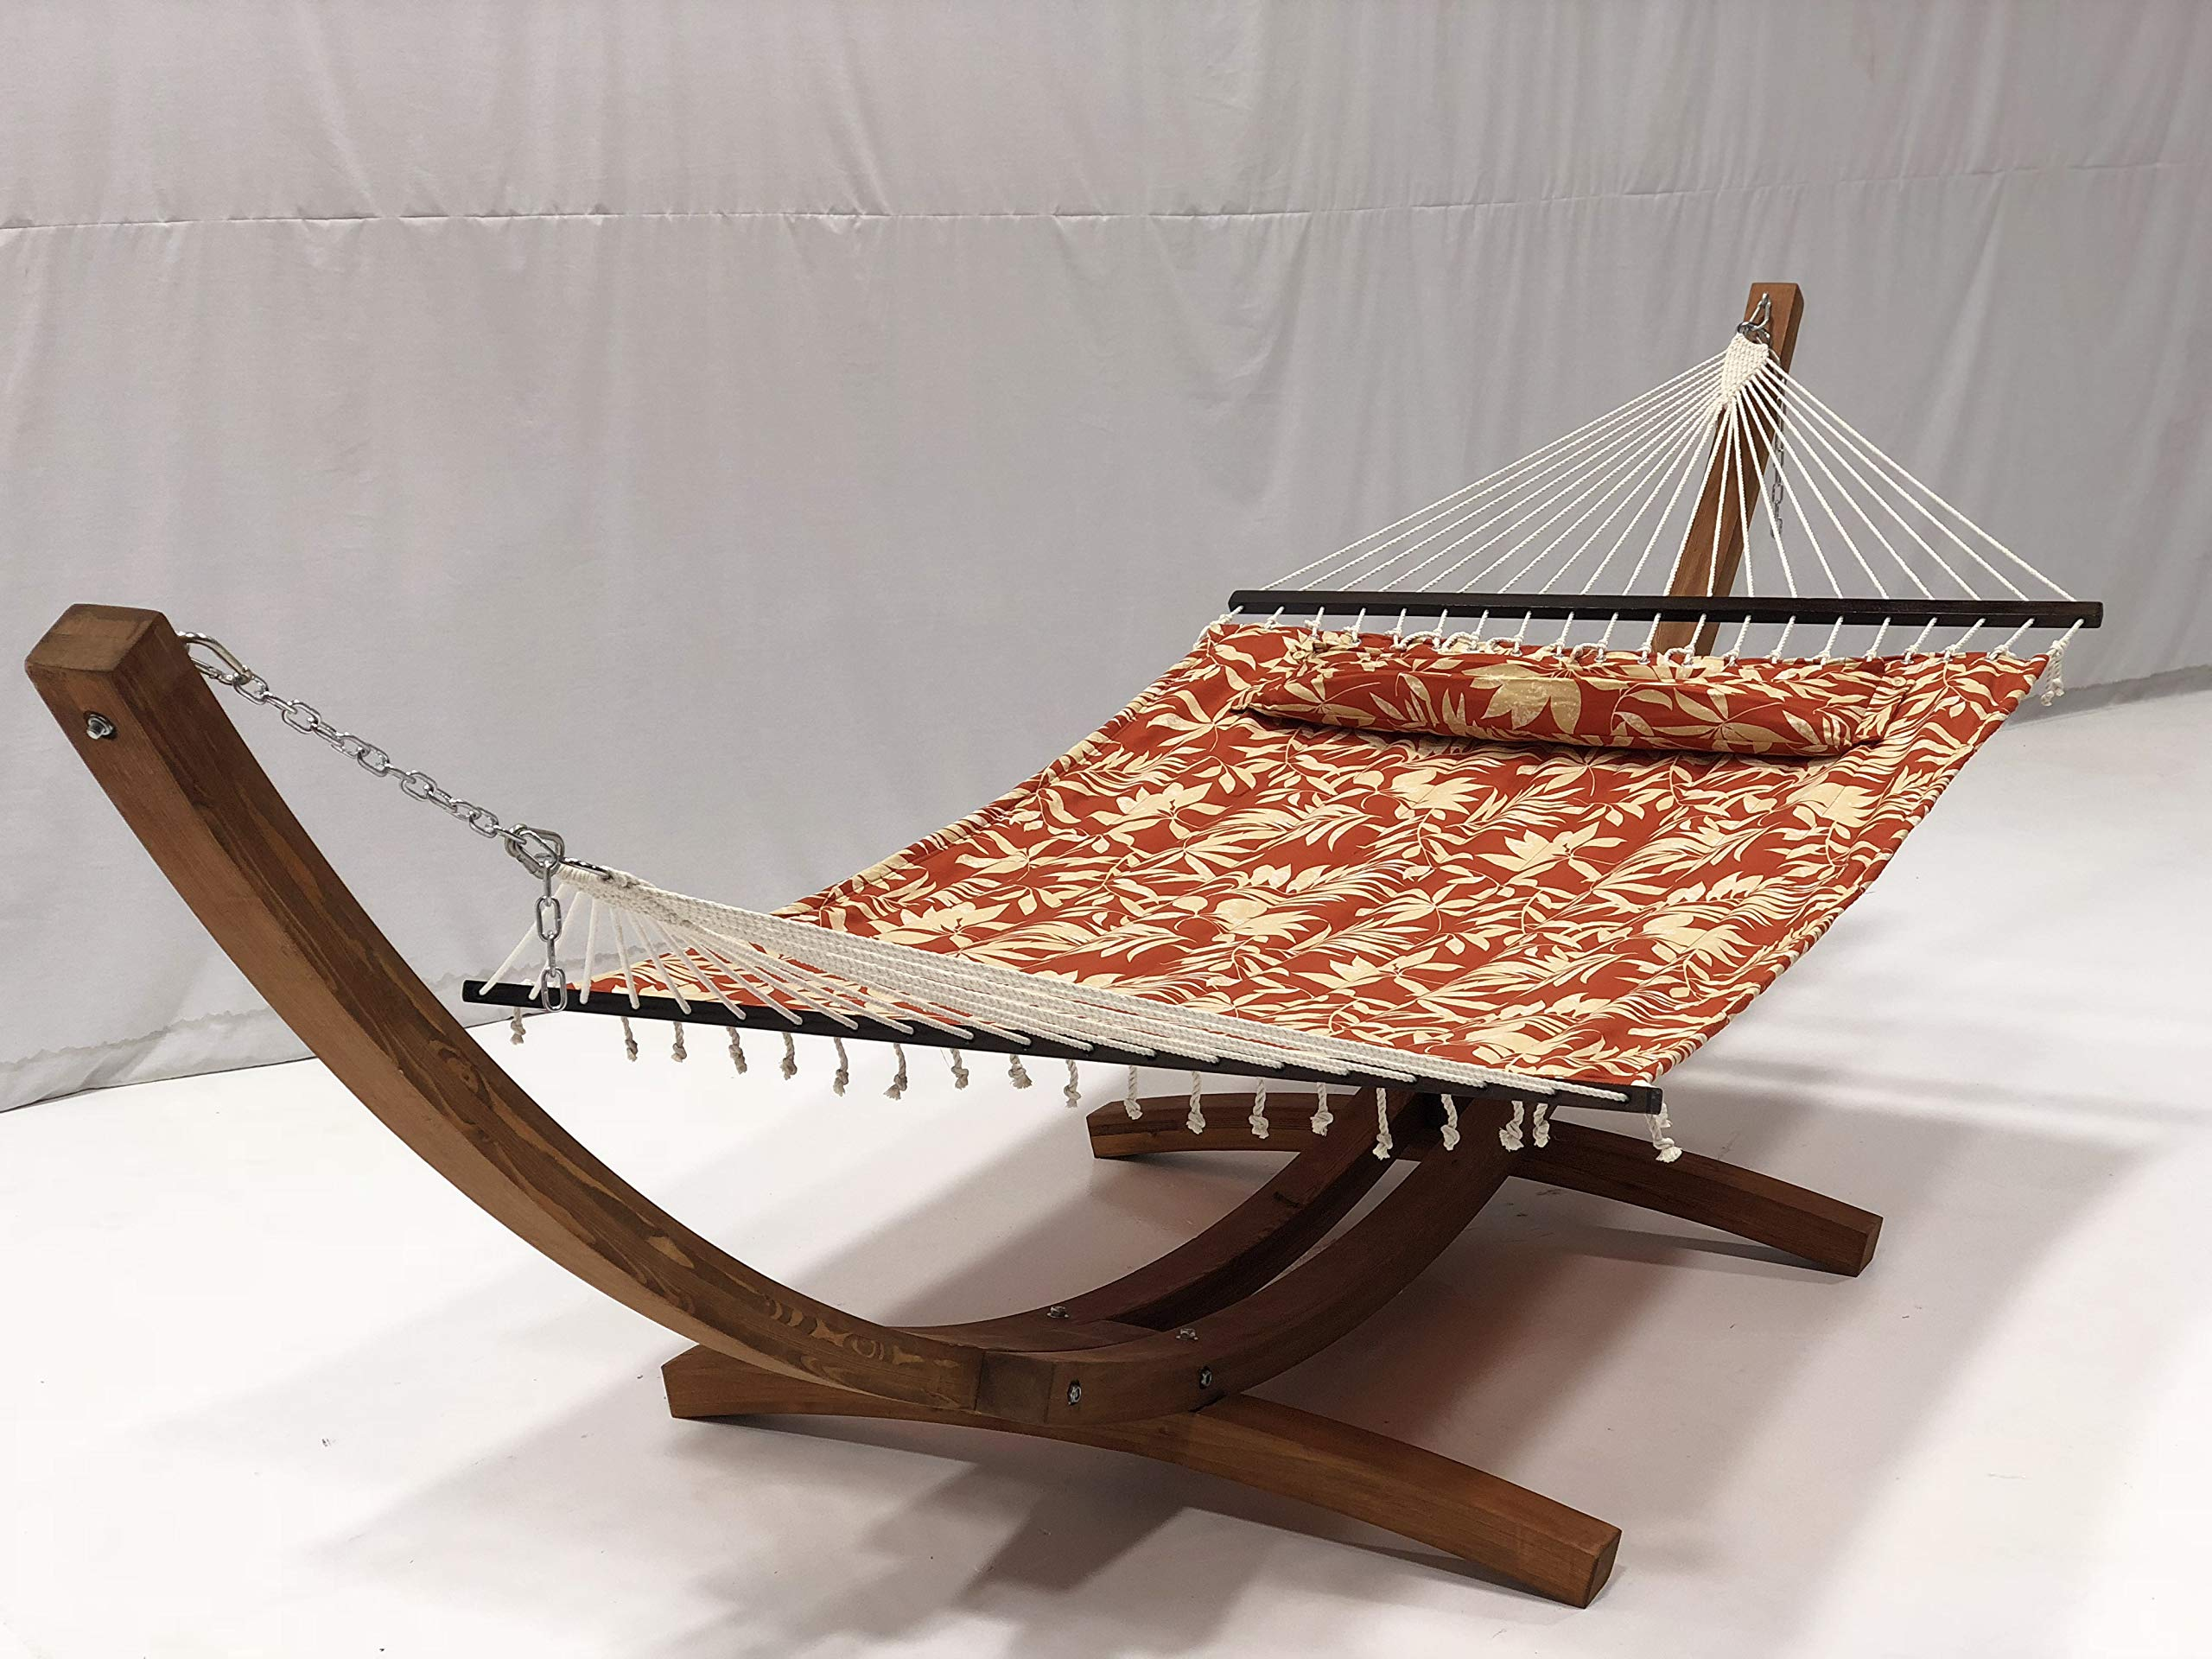 Petra Leisure 14 Ft. Wooden Arc Hammock Stand + Deluxe Quilted Double Padded Hammock Bed w/Pillow. 2 Person Bed. 450 LB Capacity(Teak Stain/Elegant Floral)